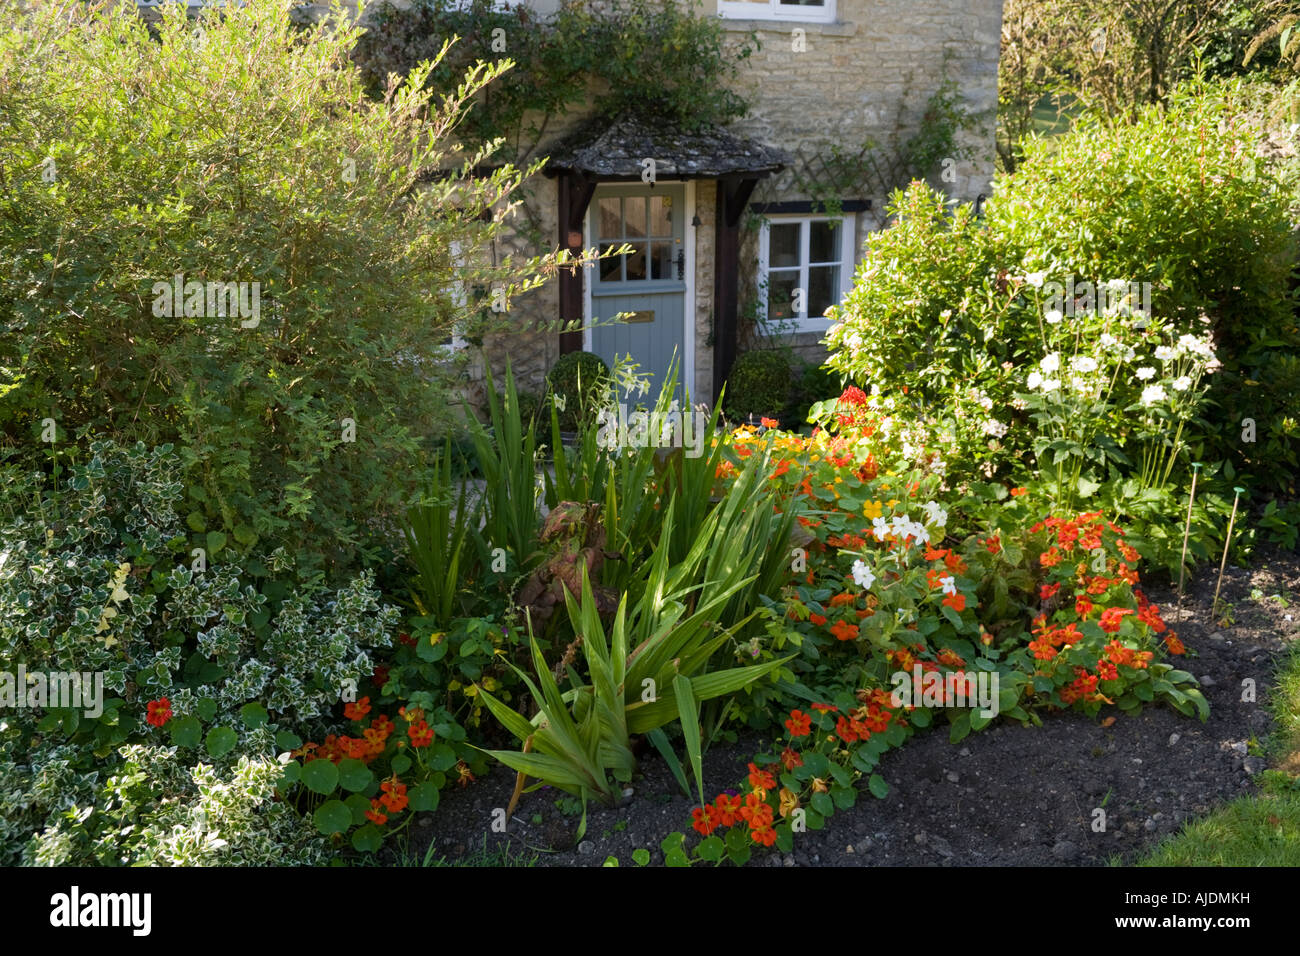 A cottage garden in the Cotswold town of Northleach, Gloucestershire - Stock Image